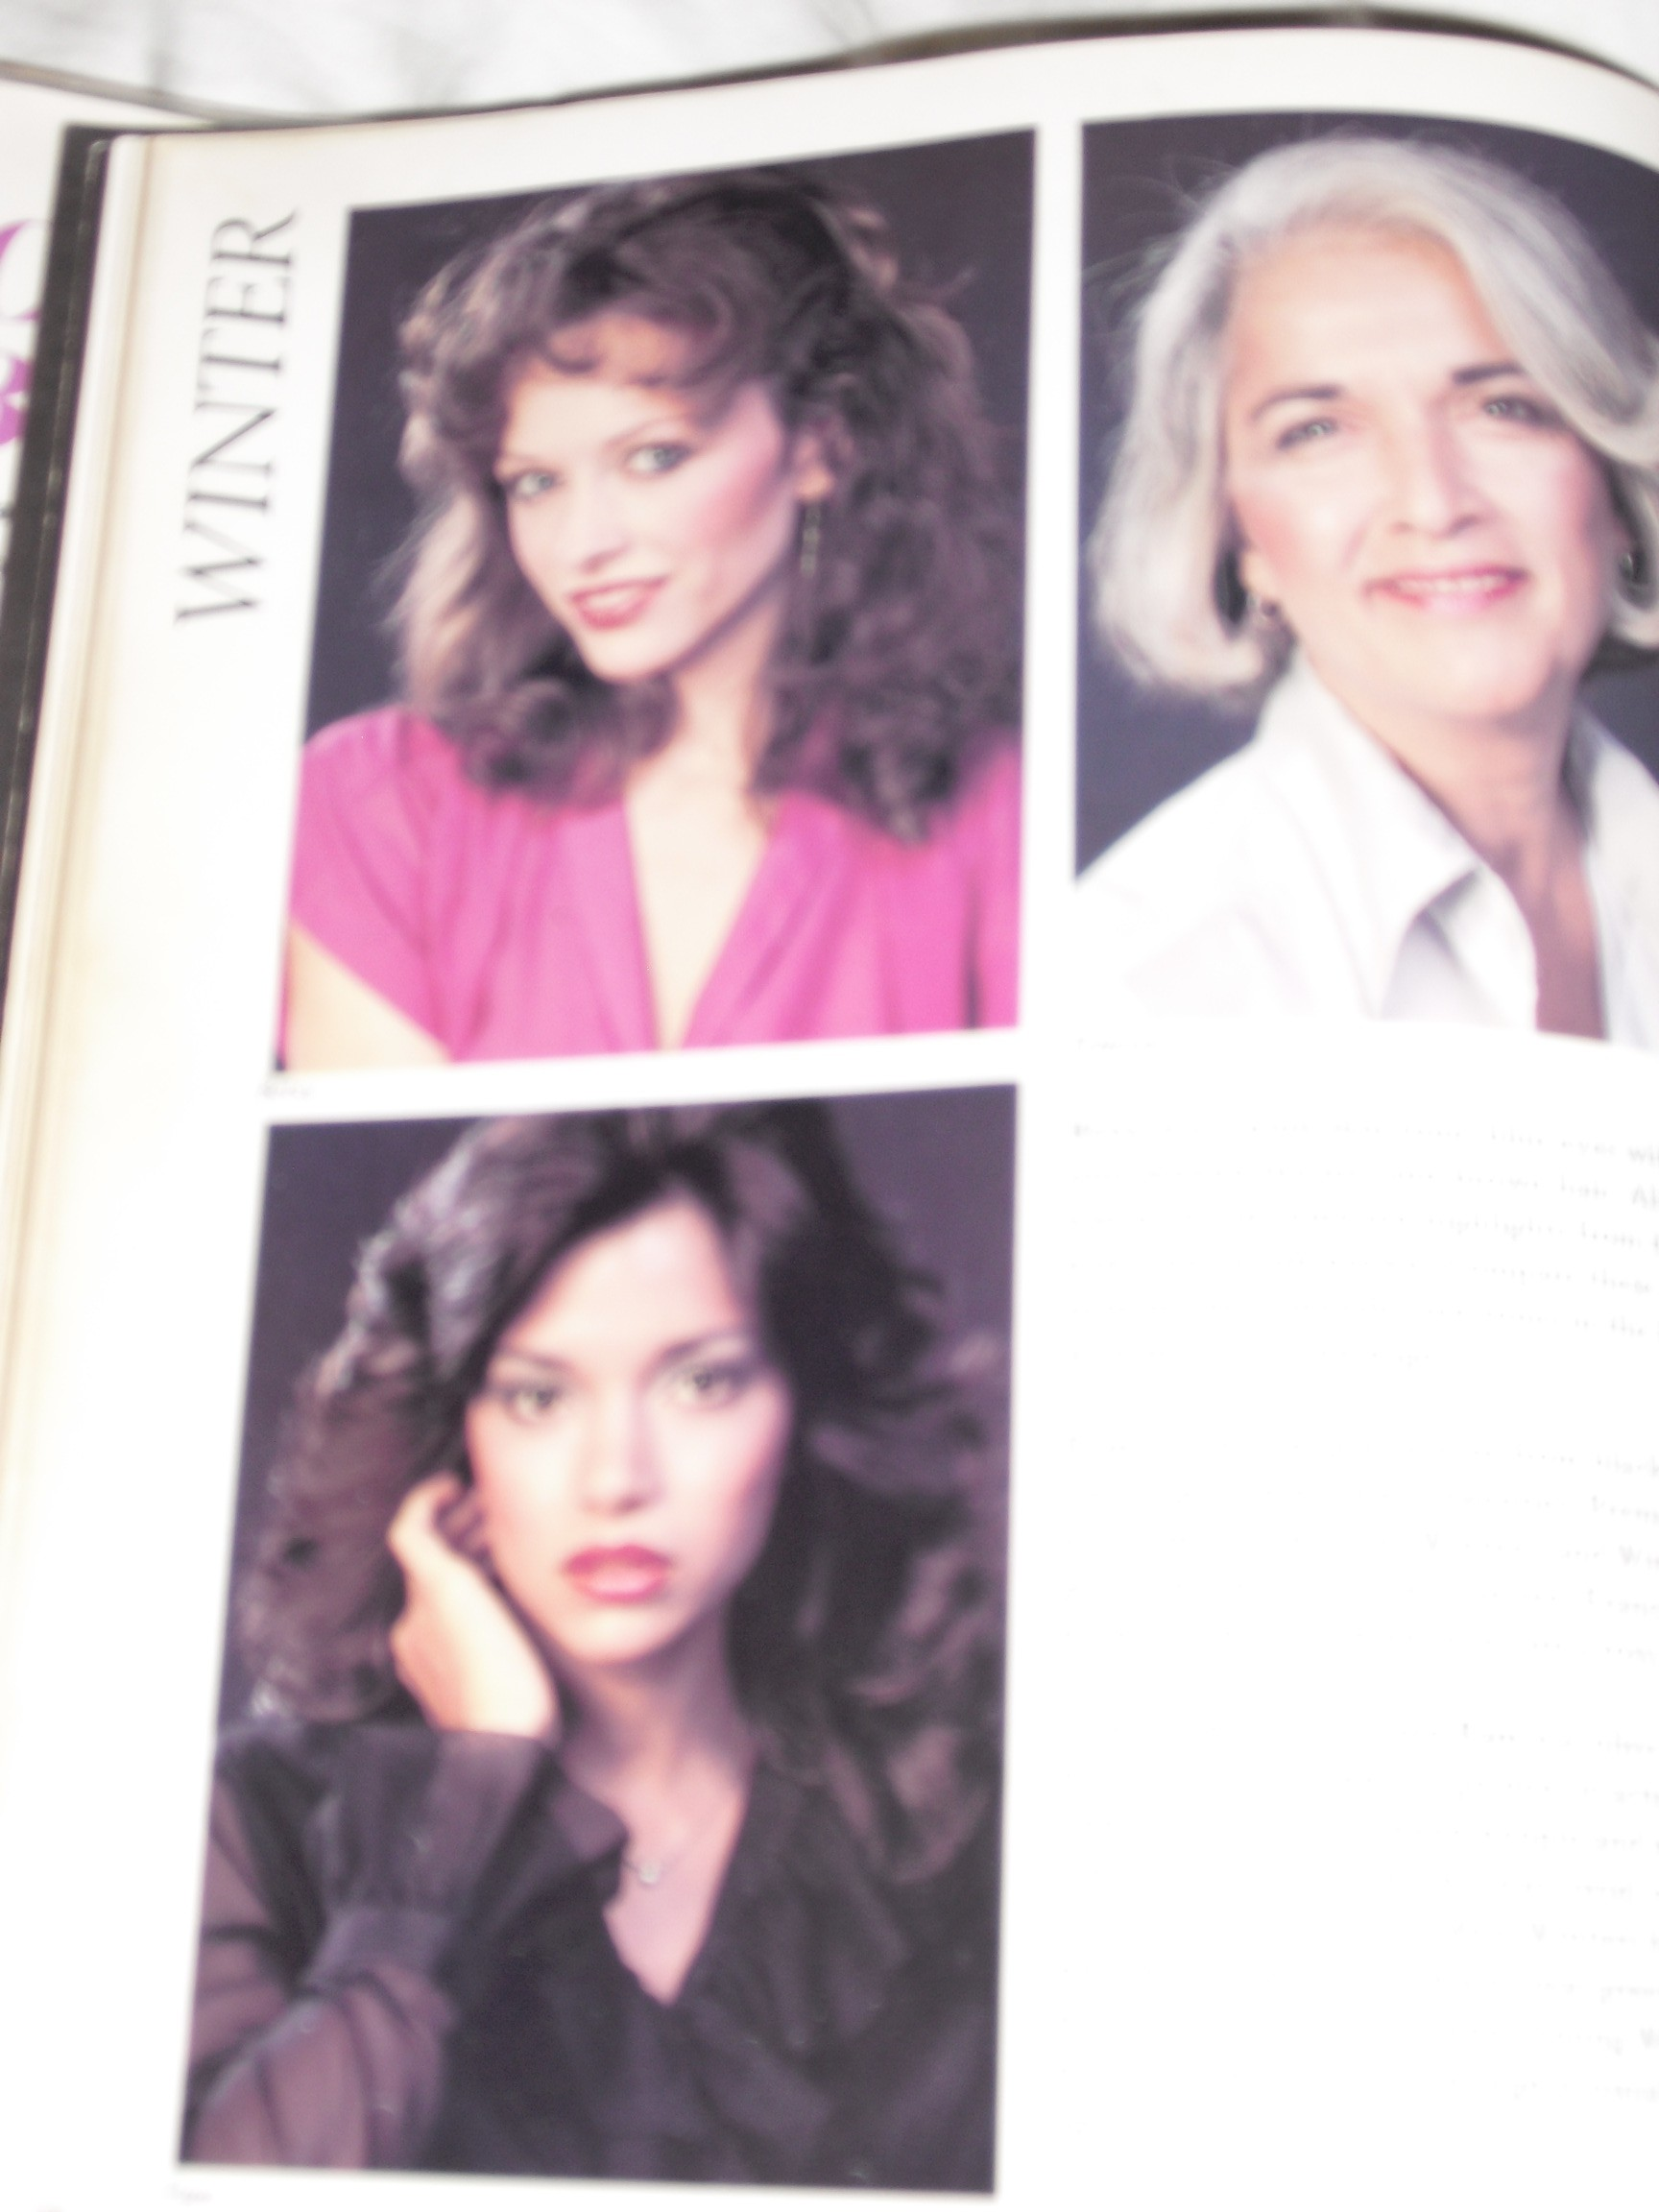 Color Me Beautiful pictures of 3 women with 80's hair / makeup